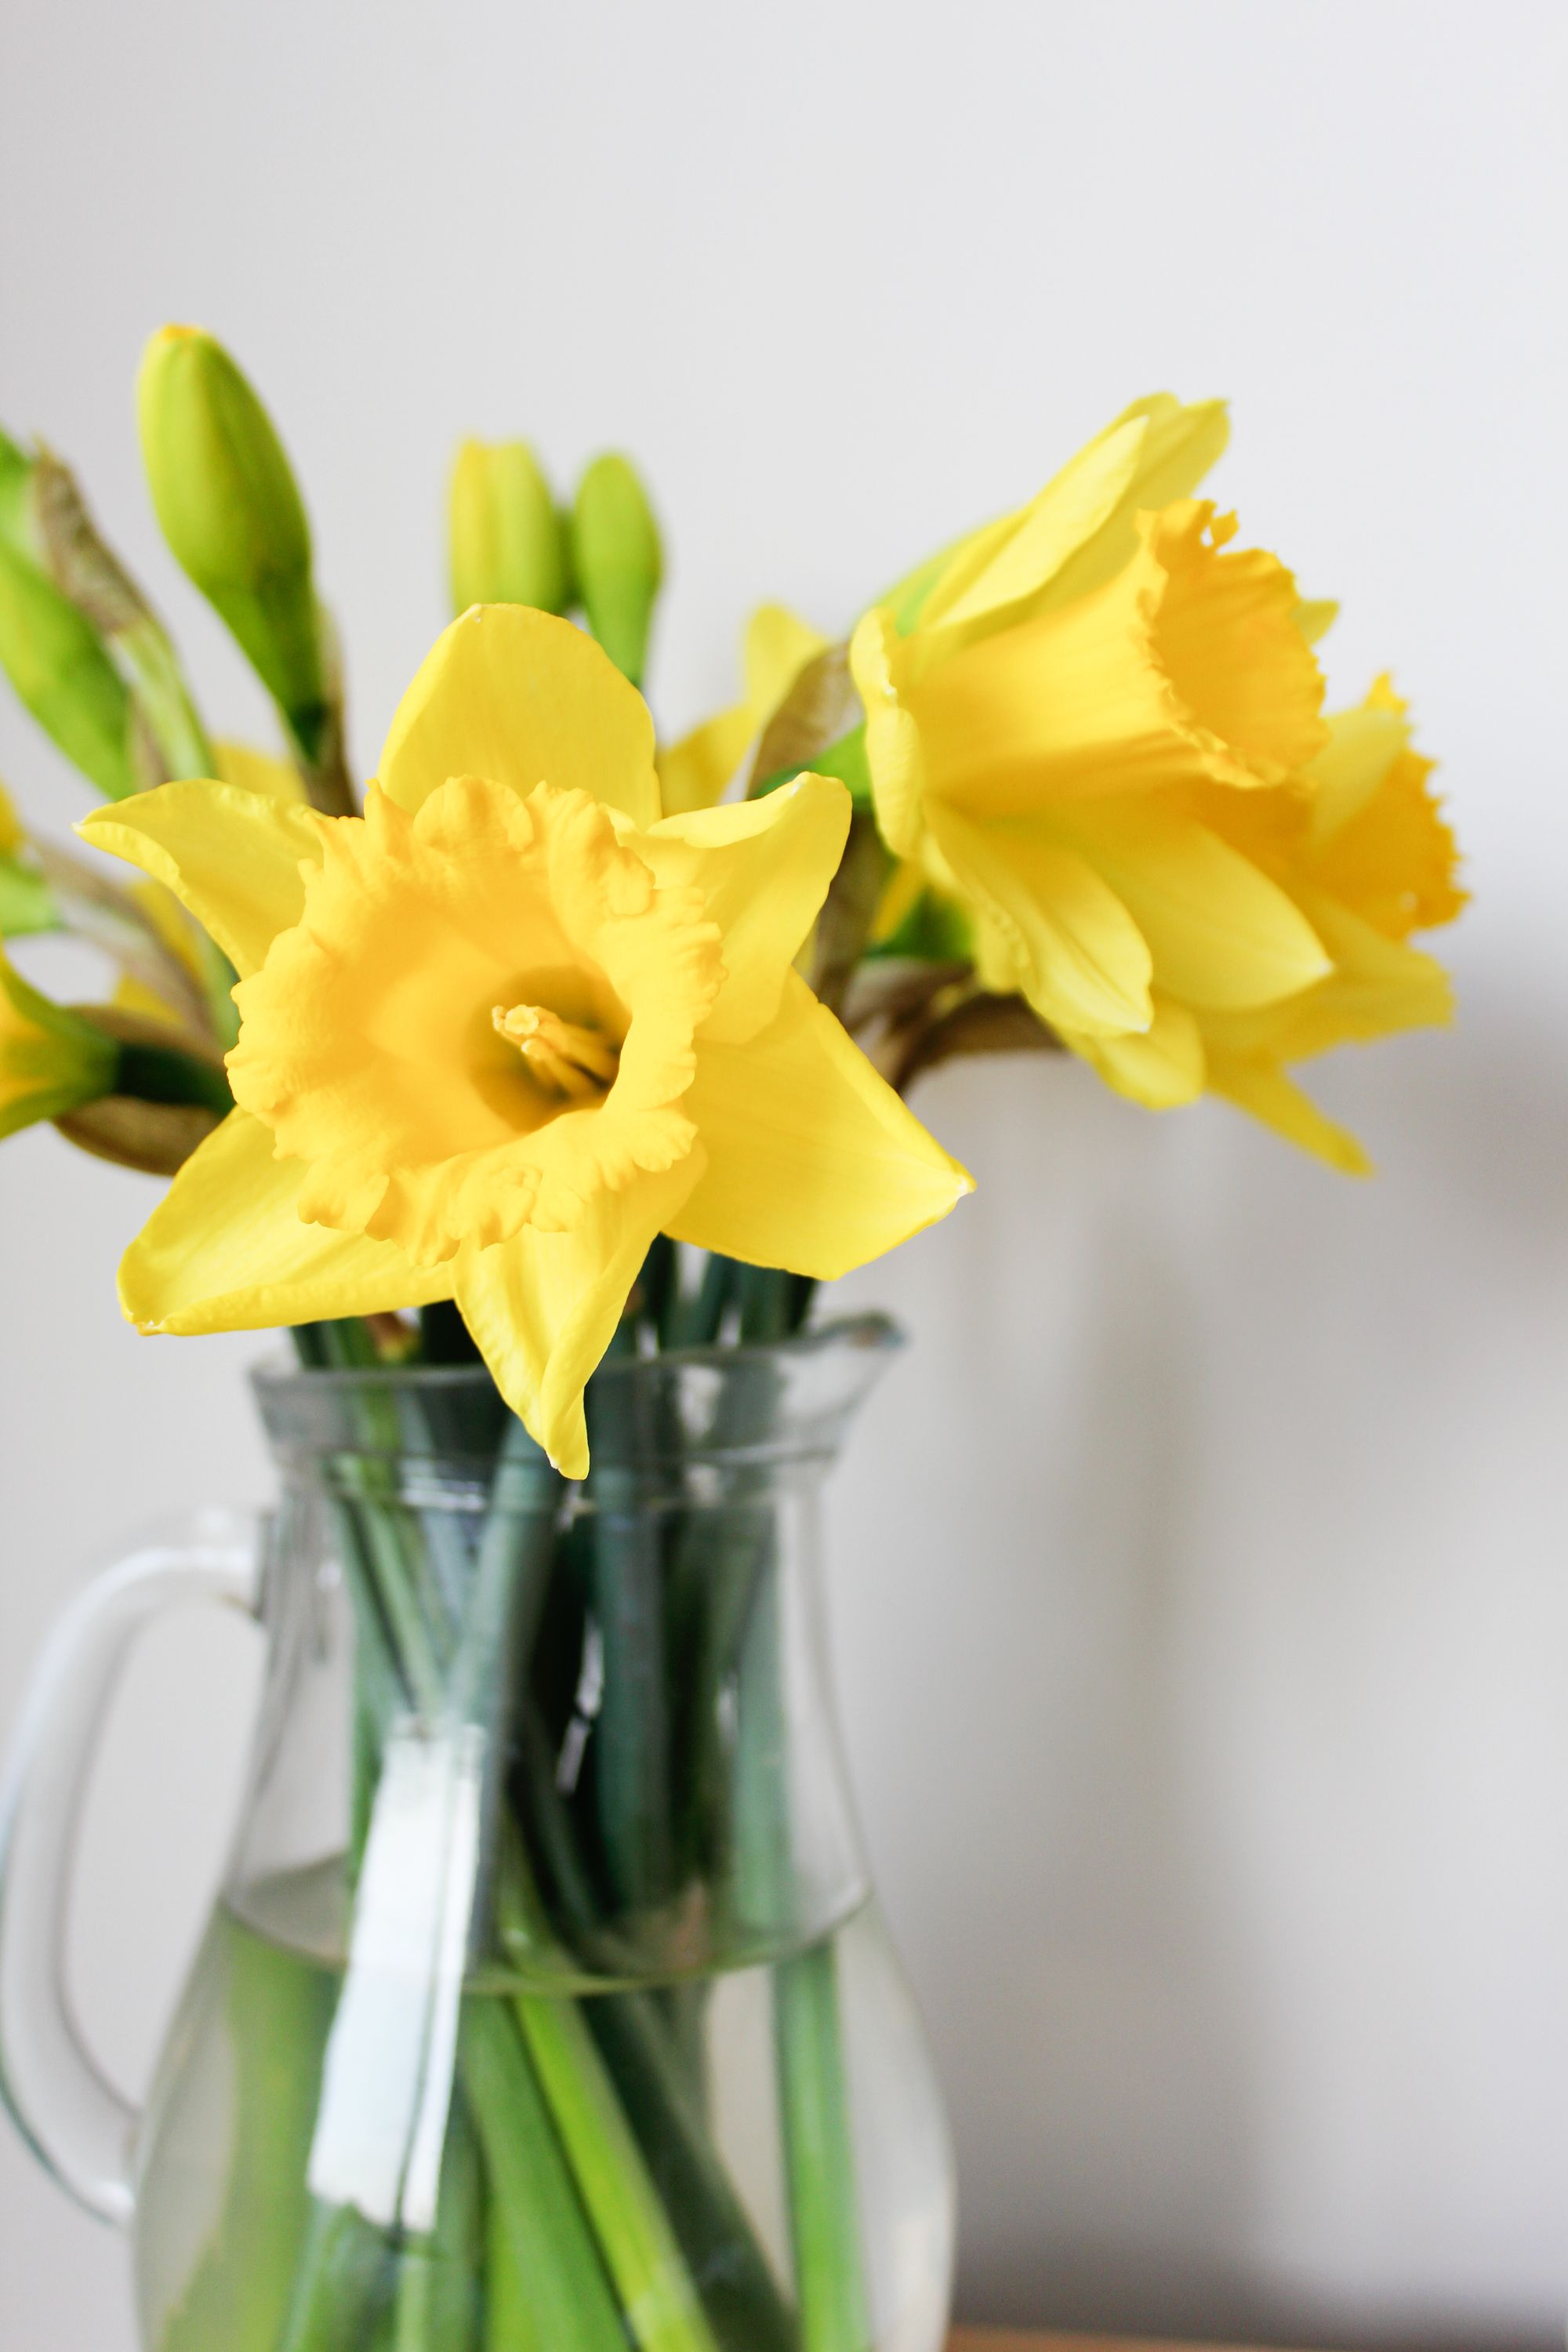 Spring-daffodils-in-a-glass-vase---Beak-Up-Crafts